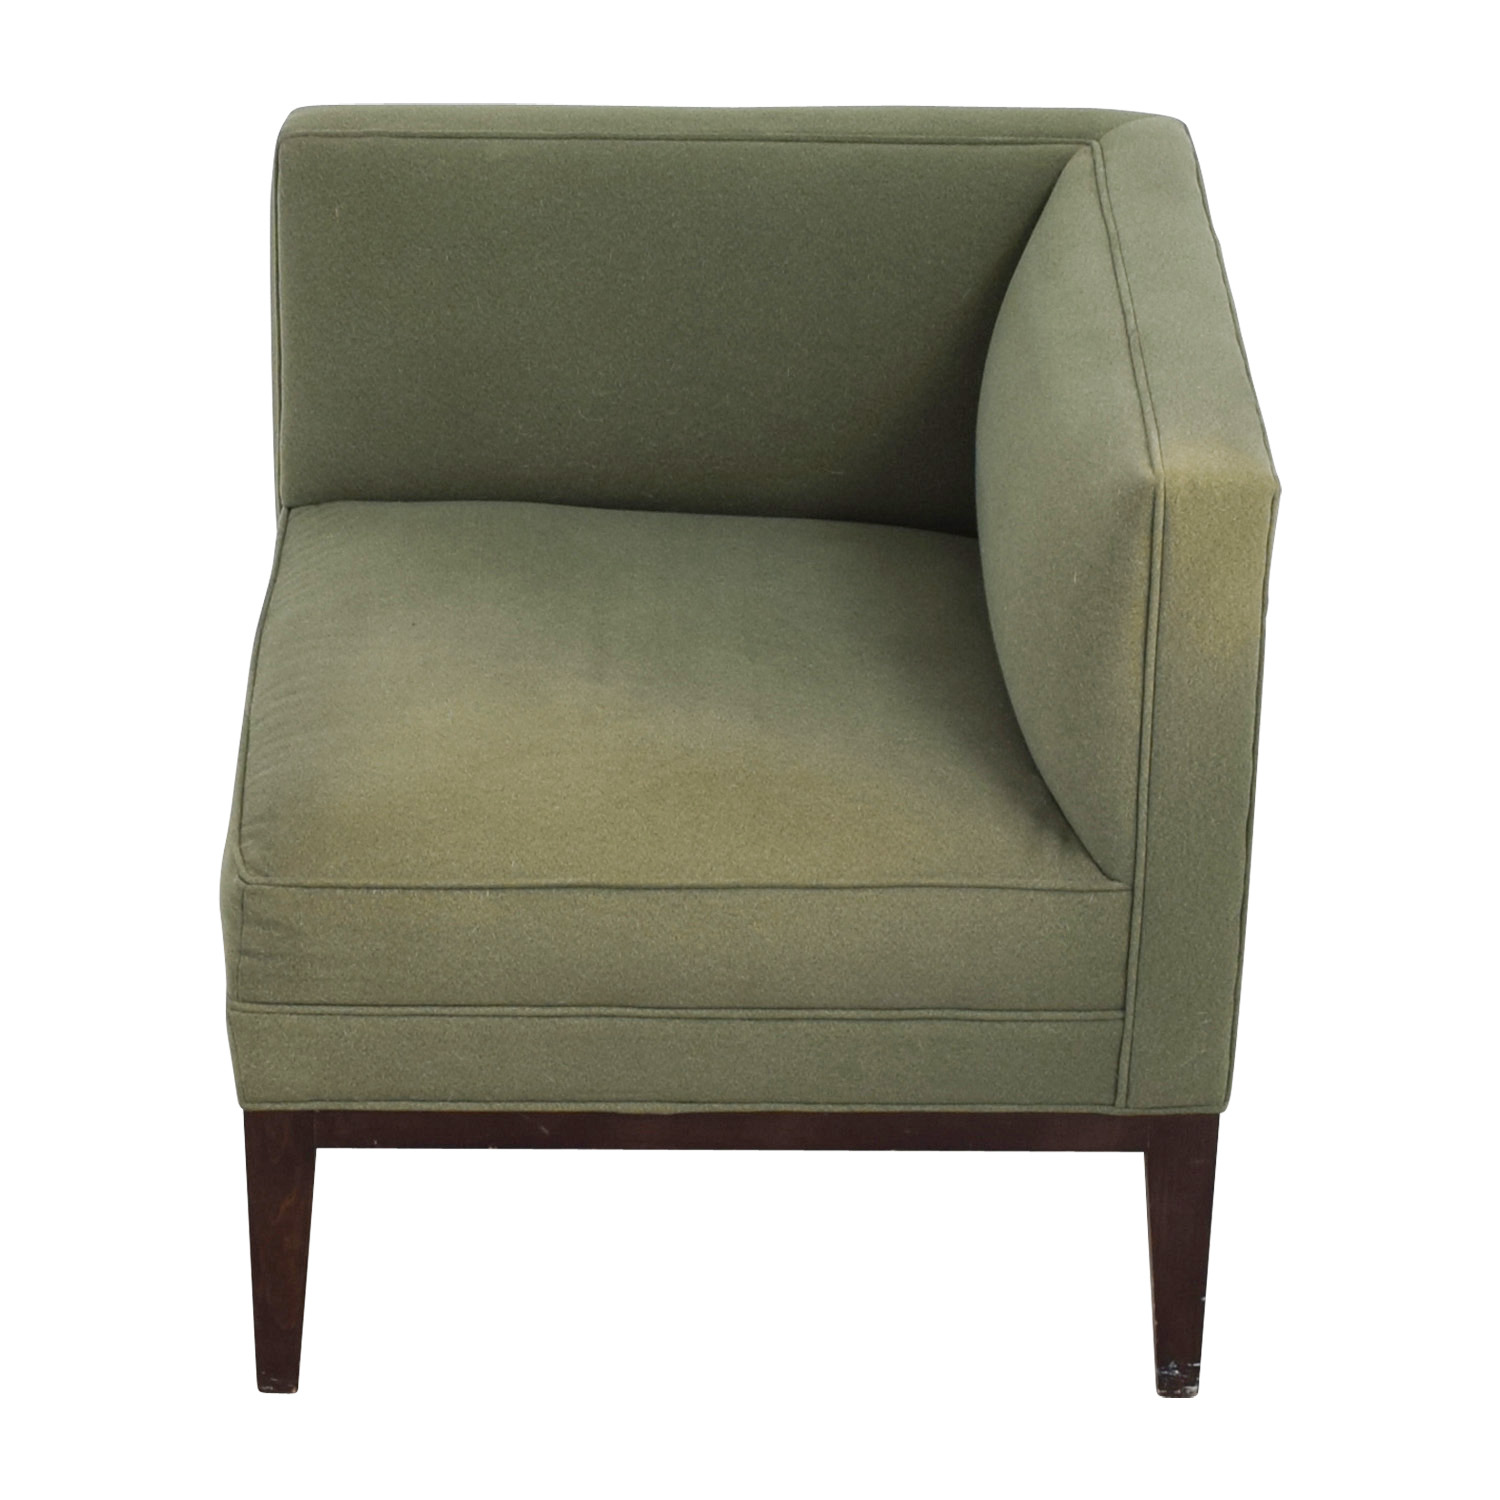 ... Mitchell Gold + Bob Williams Sage Green Corner Accent Chair Mitchell  Gold + Bob Williams ...